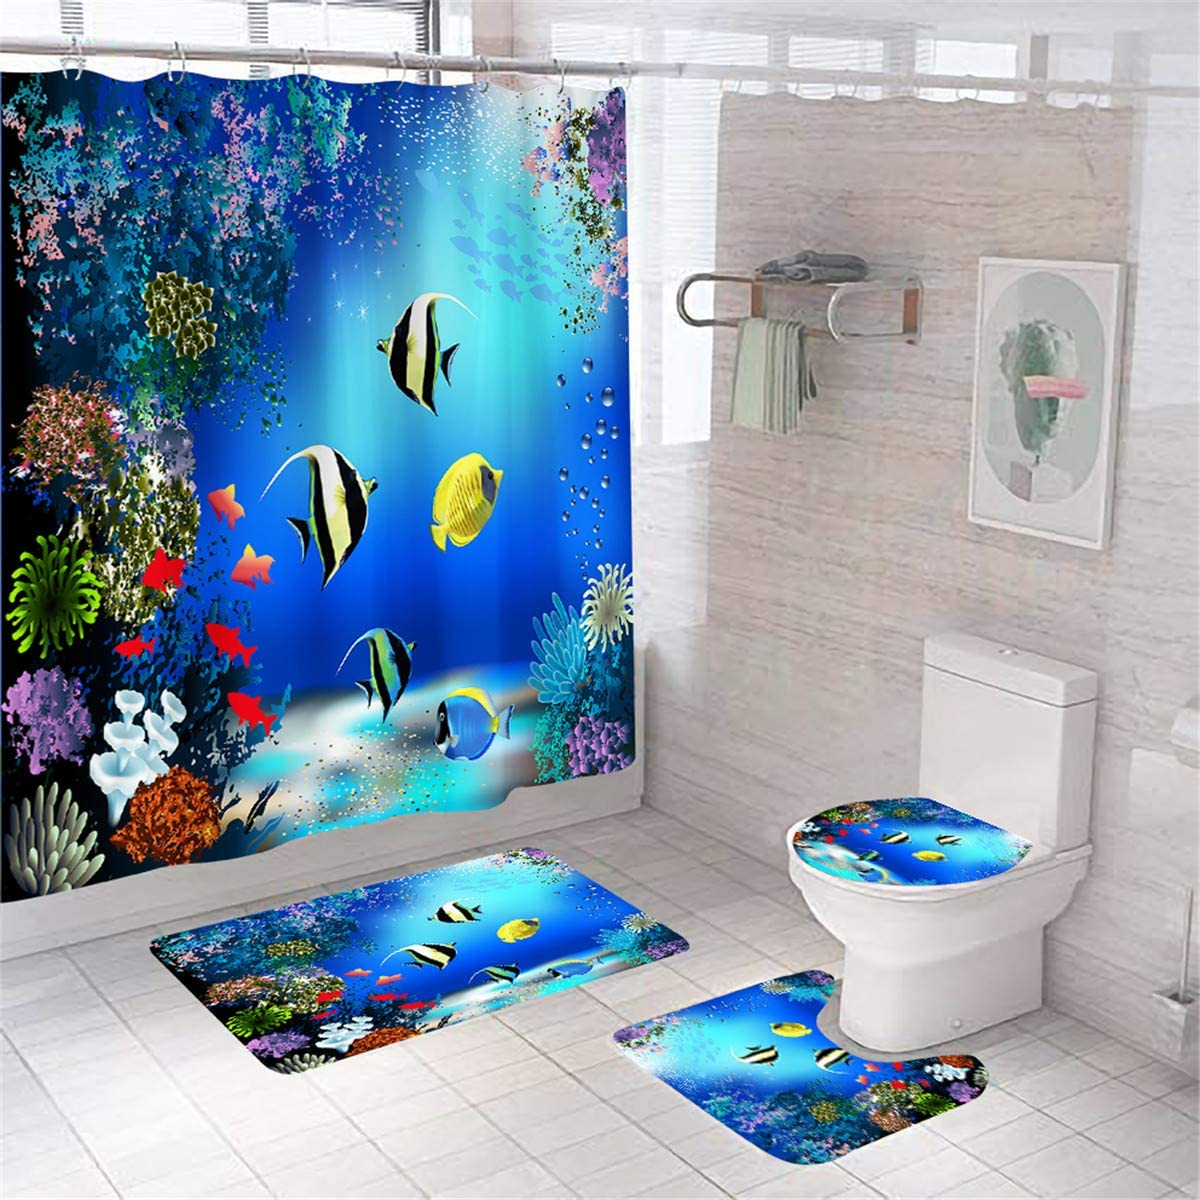 4 Pcs Shower Curtain Set Ocean Tropical Fish Blue Bathroom Decor Waterproof Bath Curtain and Rug Set Toilet Lid Cover,with 12 Hooks,70